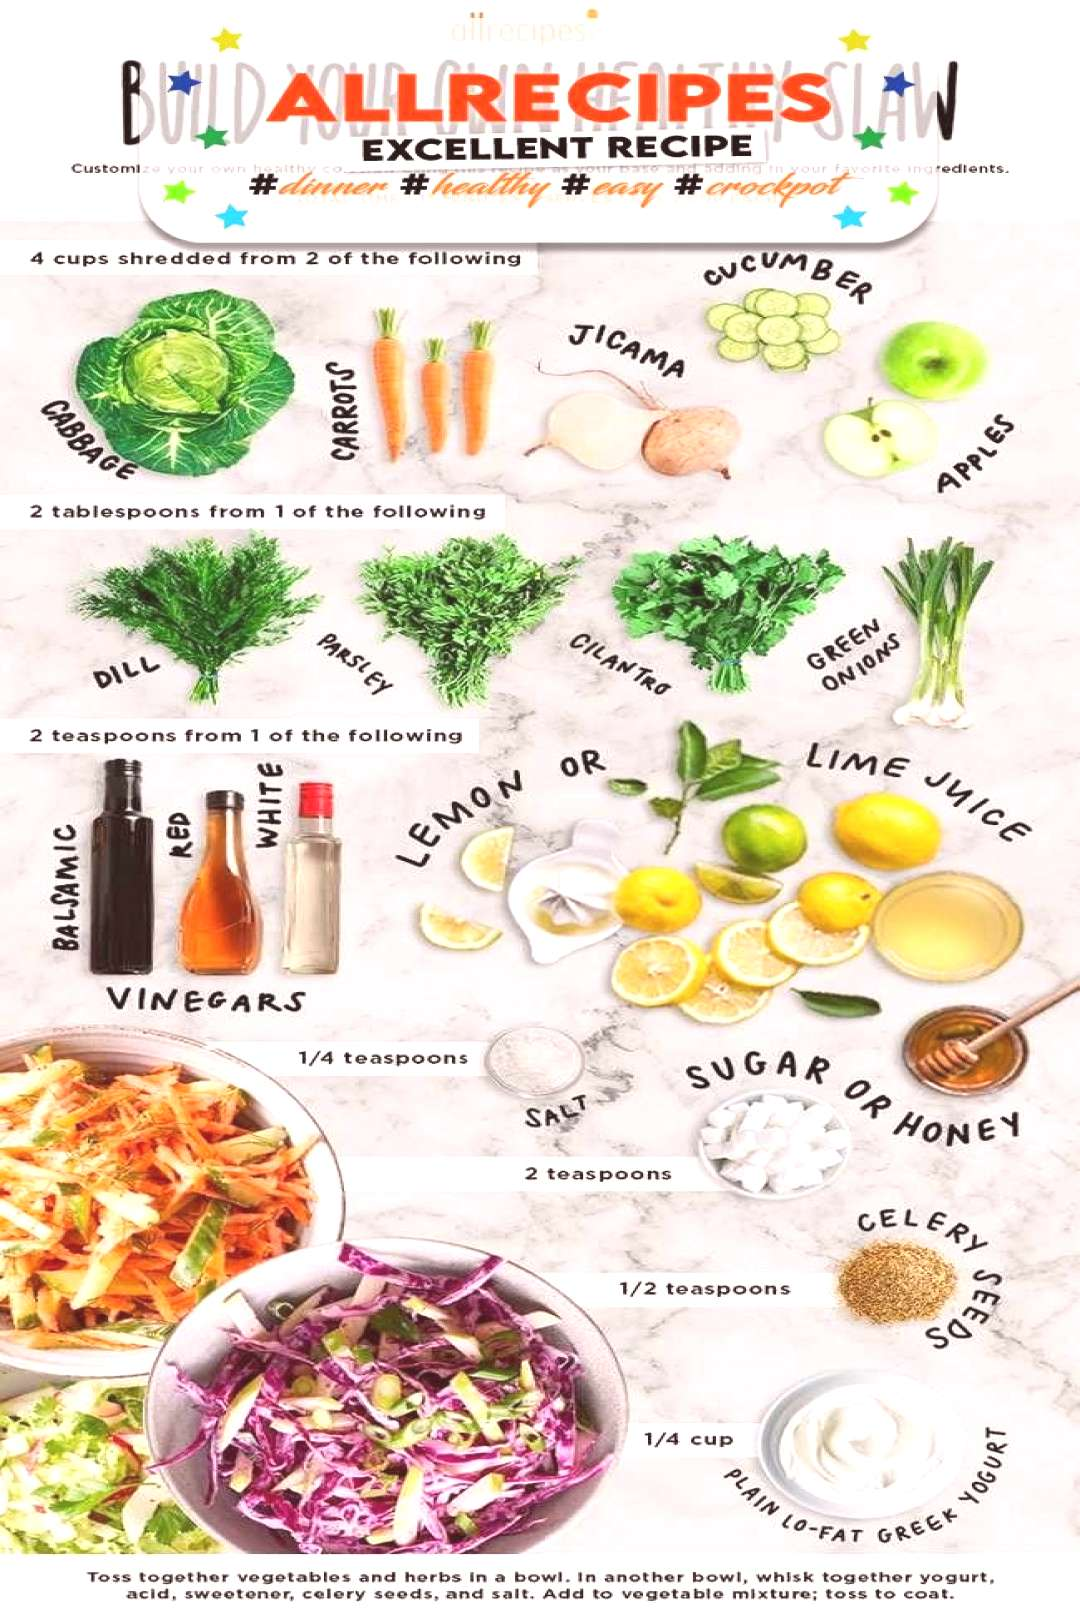 Make 3 Healthy Slaws From 1 Basic Recipe - - How to Make Cole Slaw |